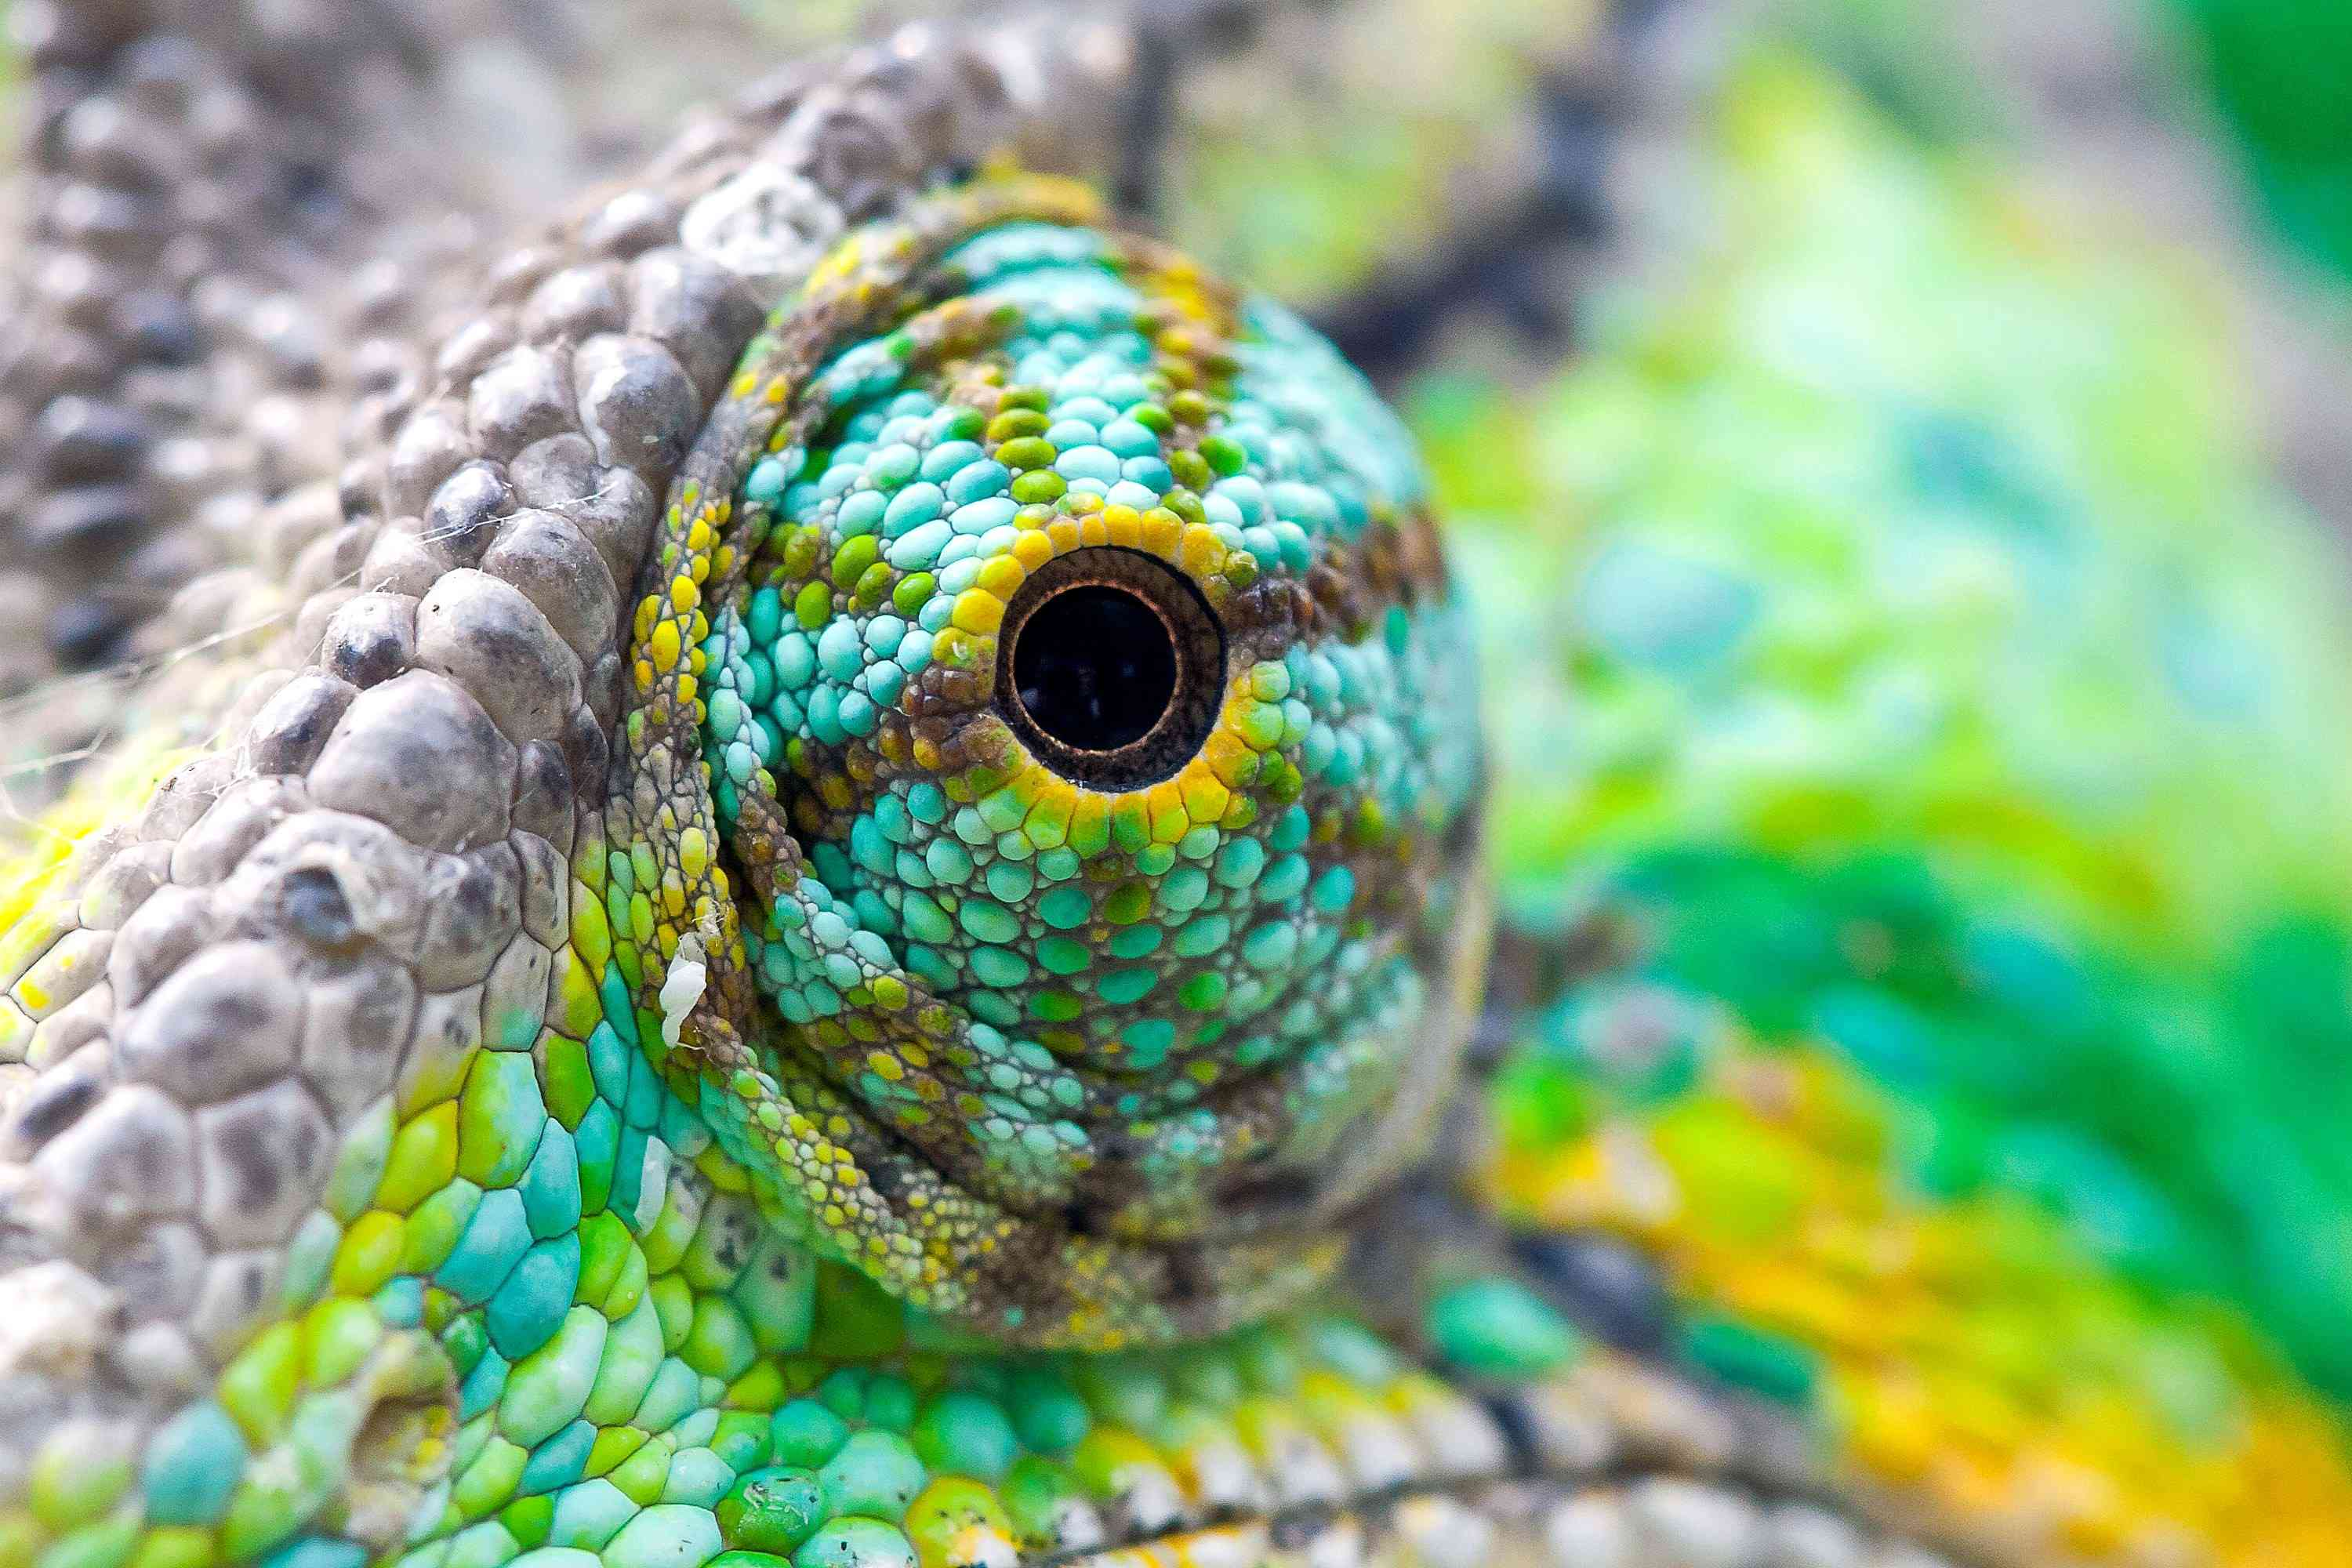 The eye of a purple, green, and yellow chameleon